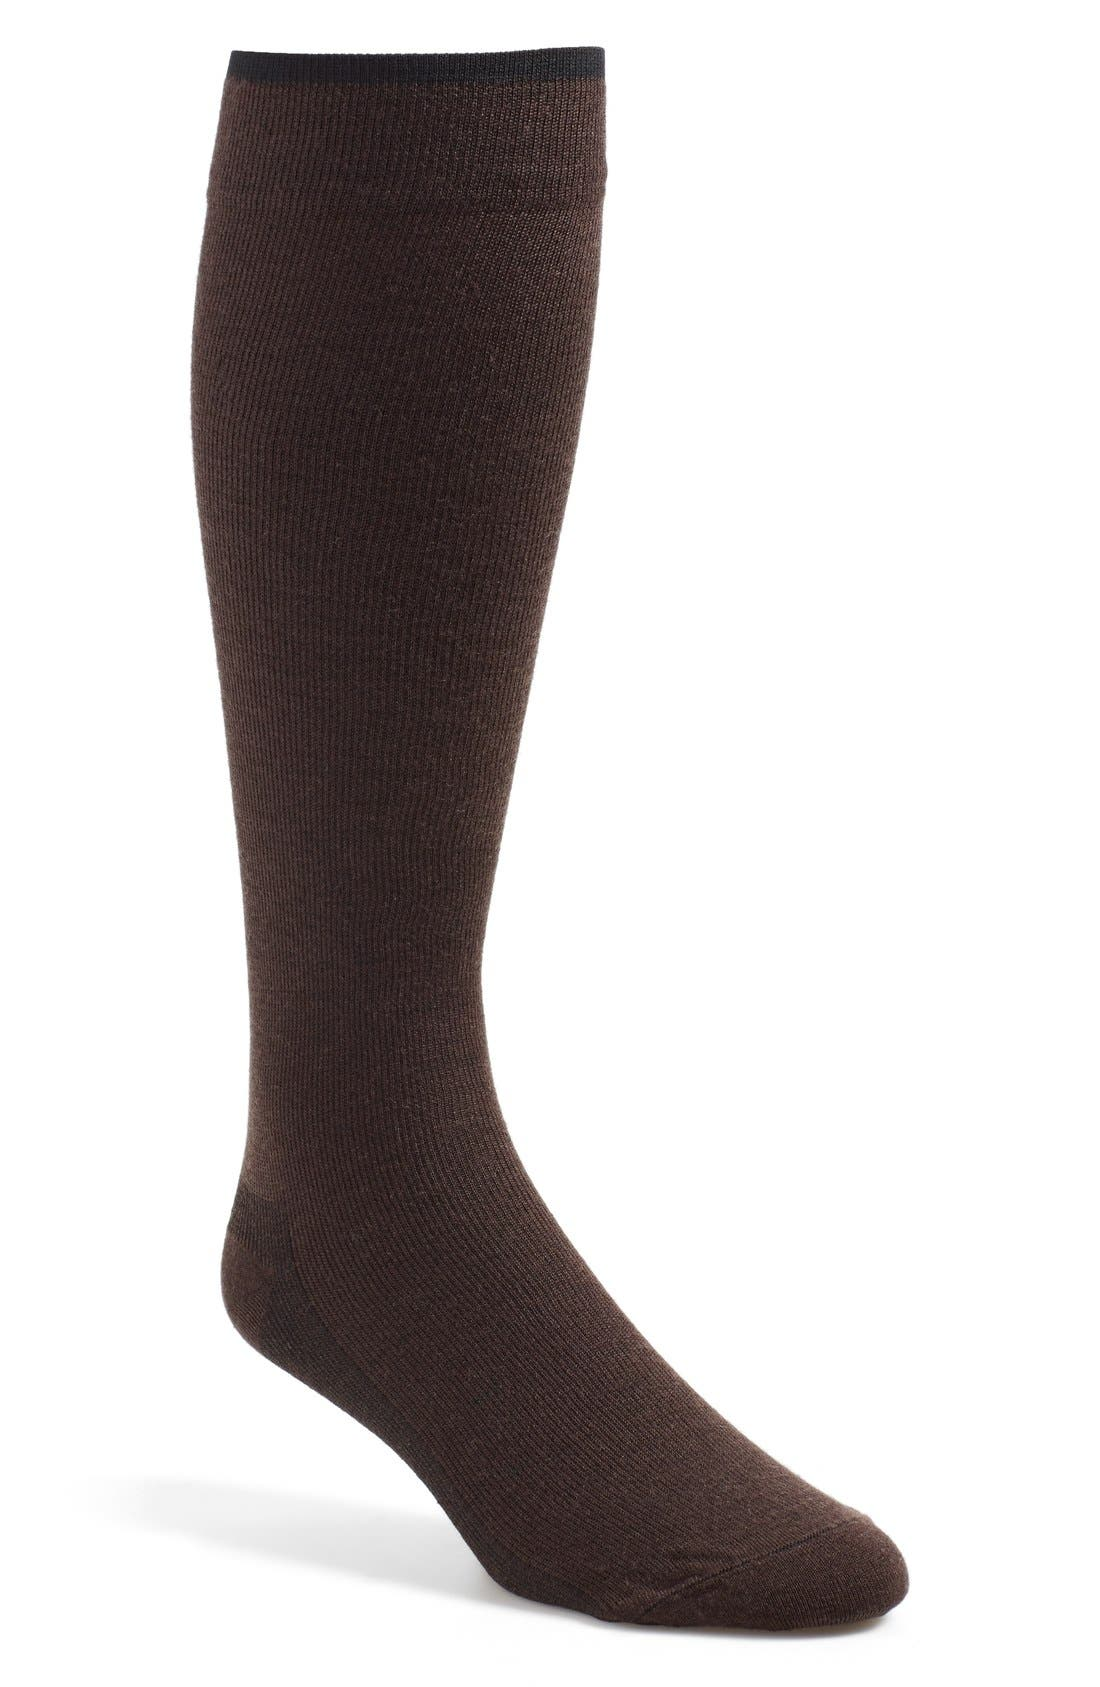 INSIGNIA BY SIGVARIS,                             'Venturist' Over the Calf Socks,                             Main thumbnail 1, color,                             BROWN